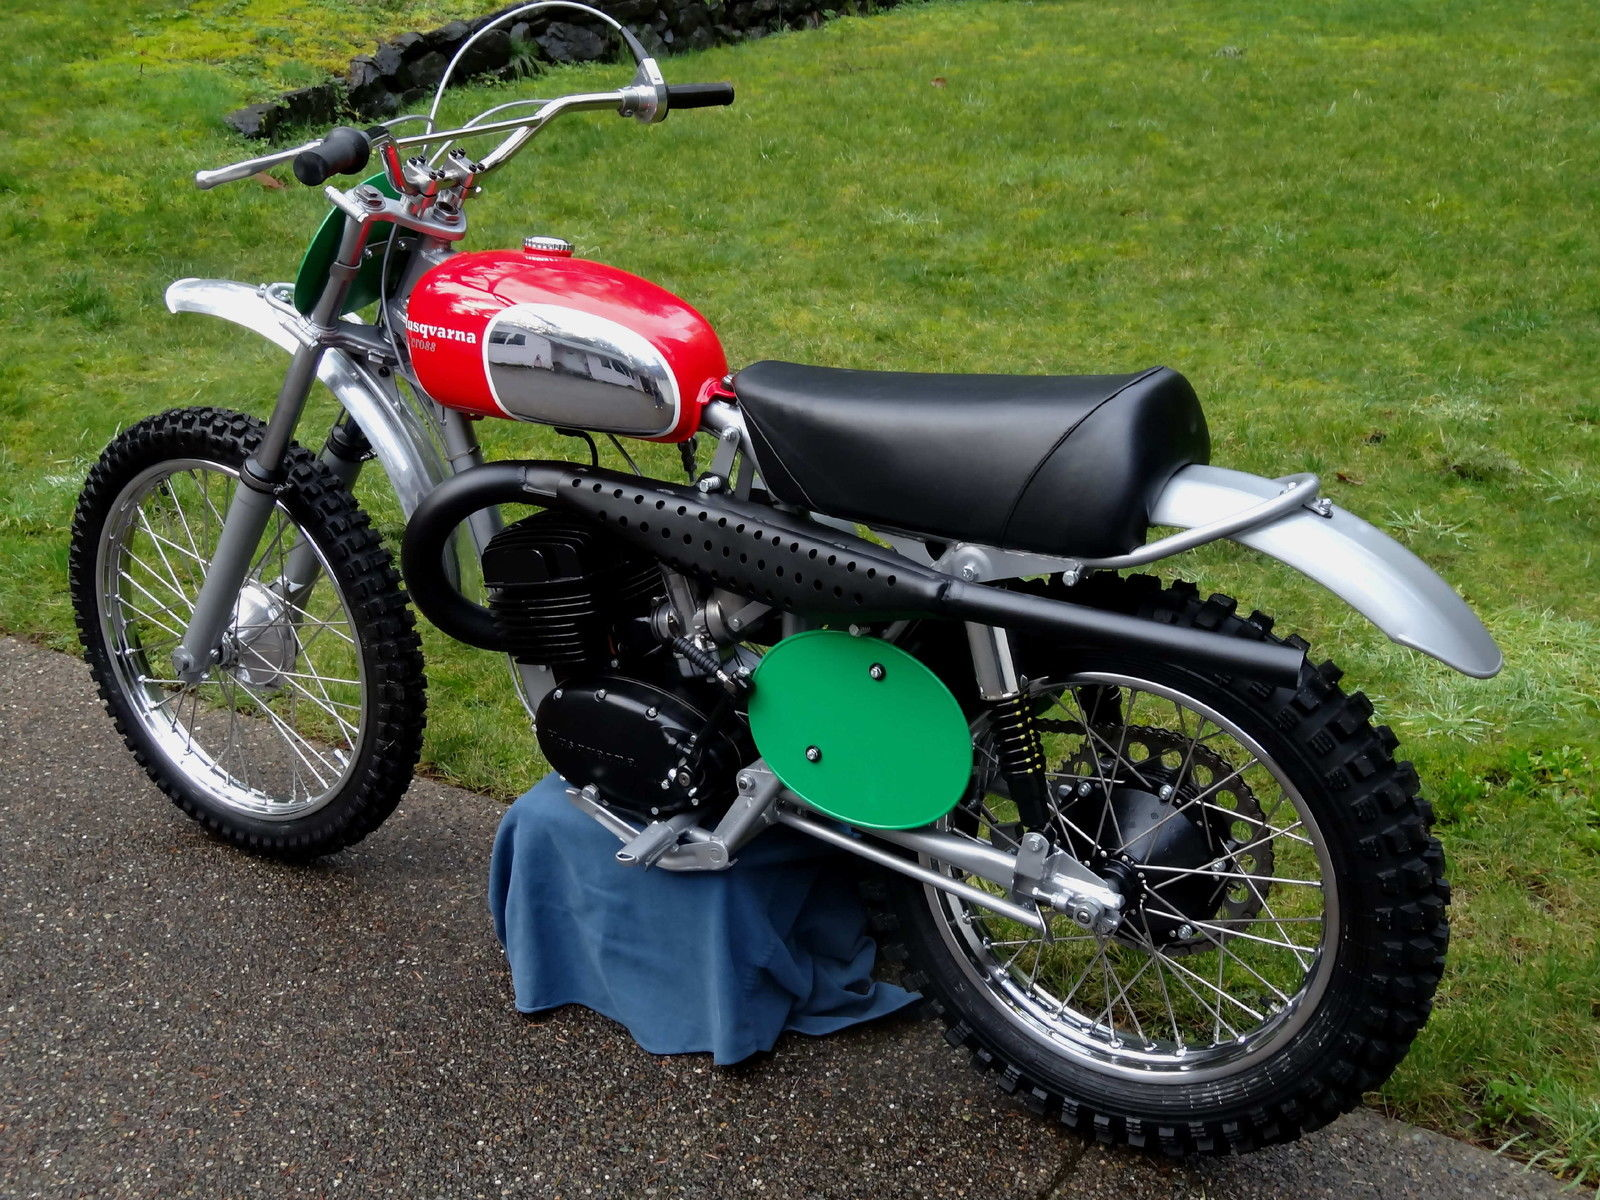 restored husqvarna 250 cross 1969 photographs at classic bikes restored bikes restored. Black Bedroom Furniture Sets. Home Design Ideas